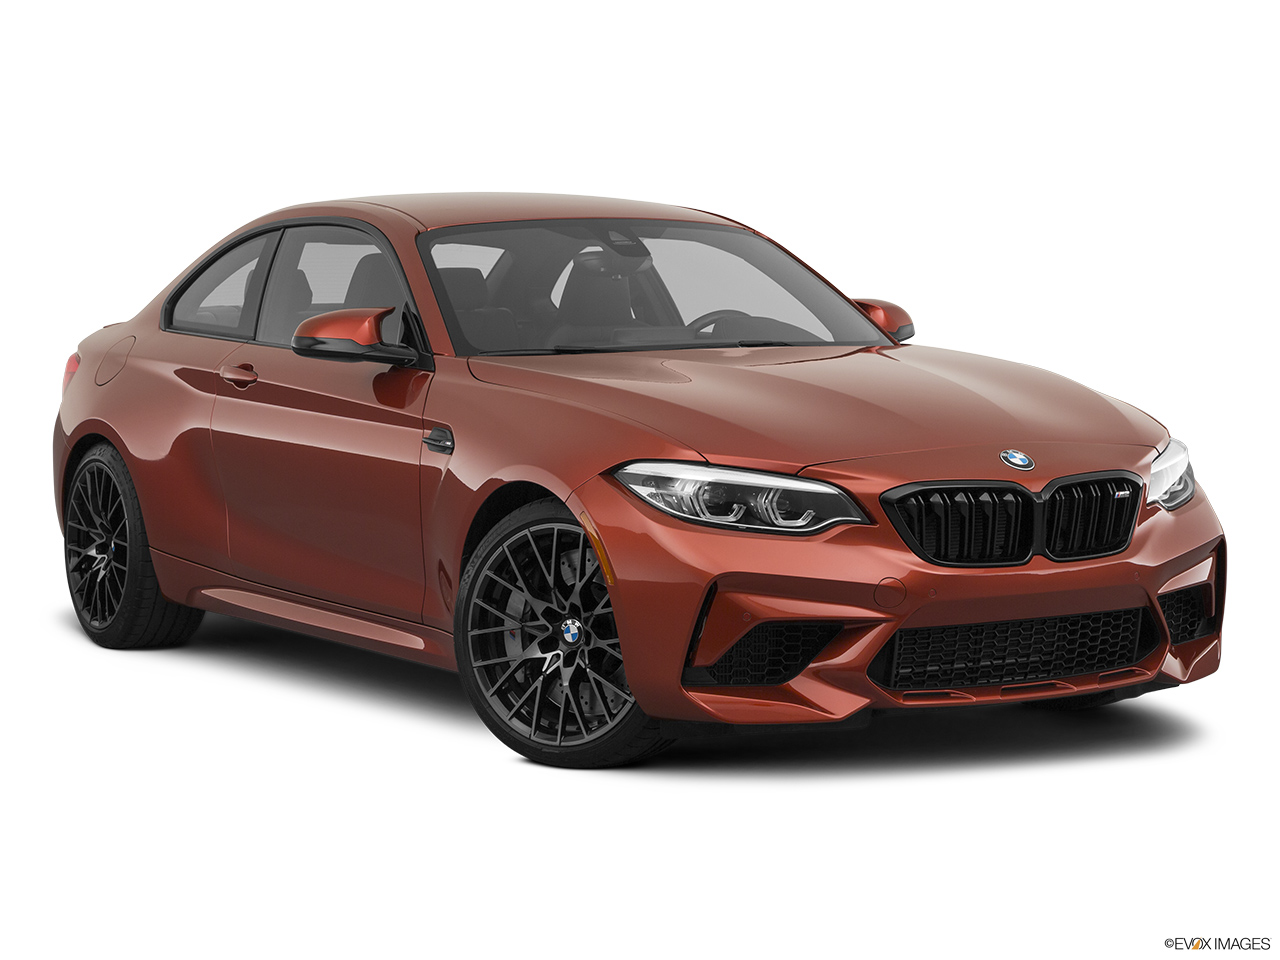 2020 BMW M2 Competition Front passenger 3/4 w/ wheels turned.